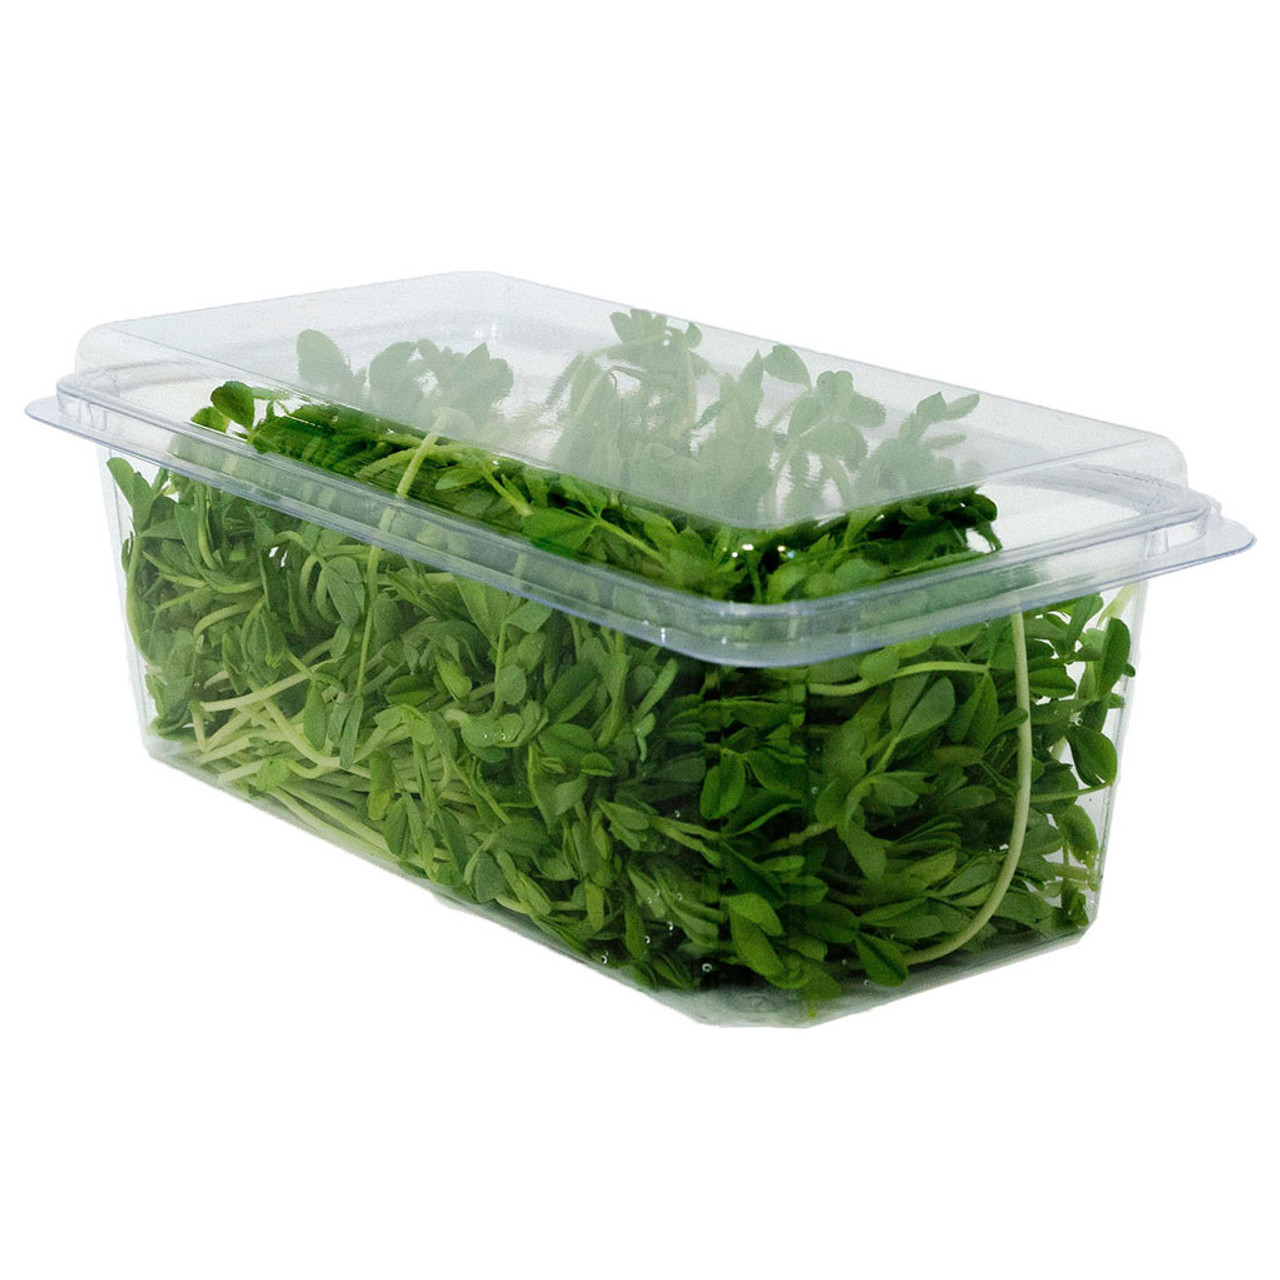 32oz Hinged Compostable Container